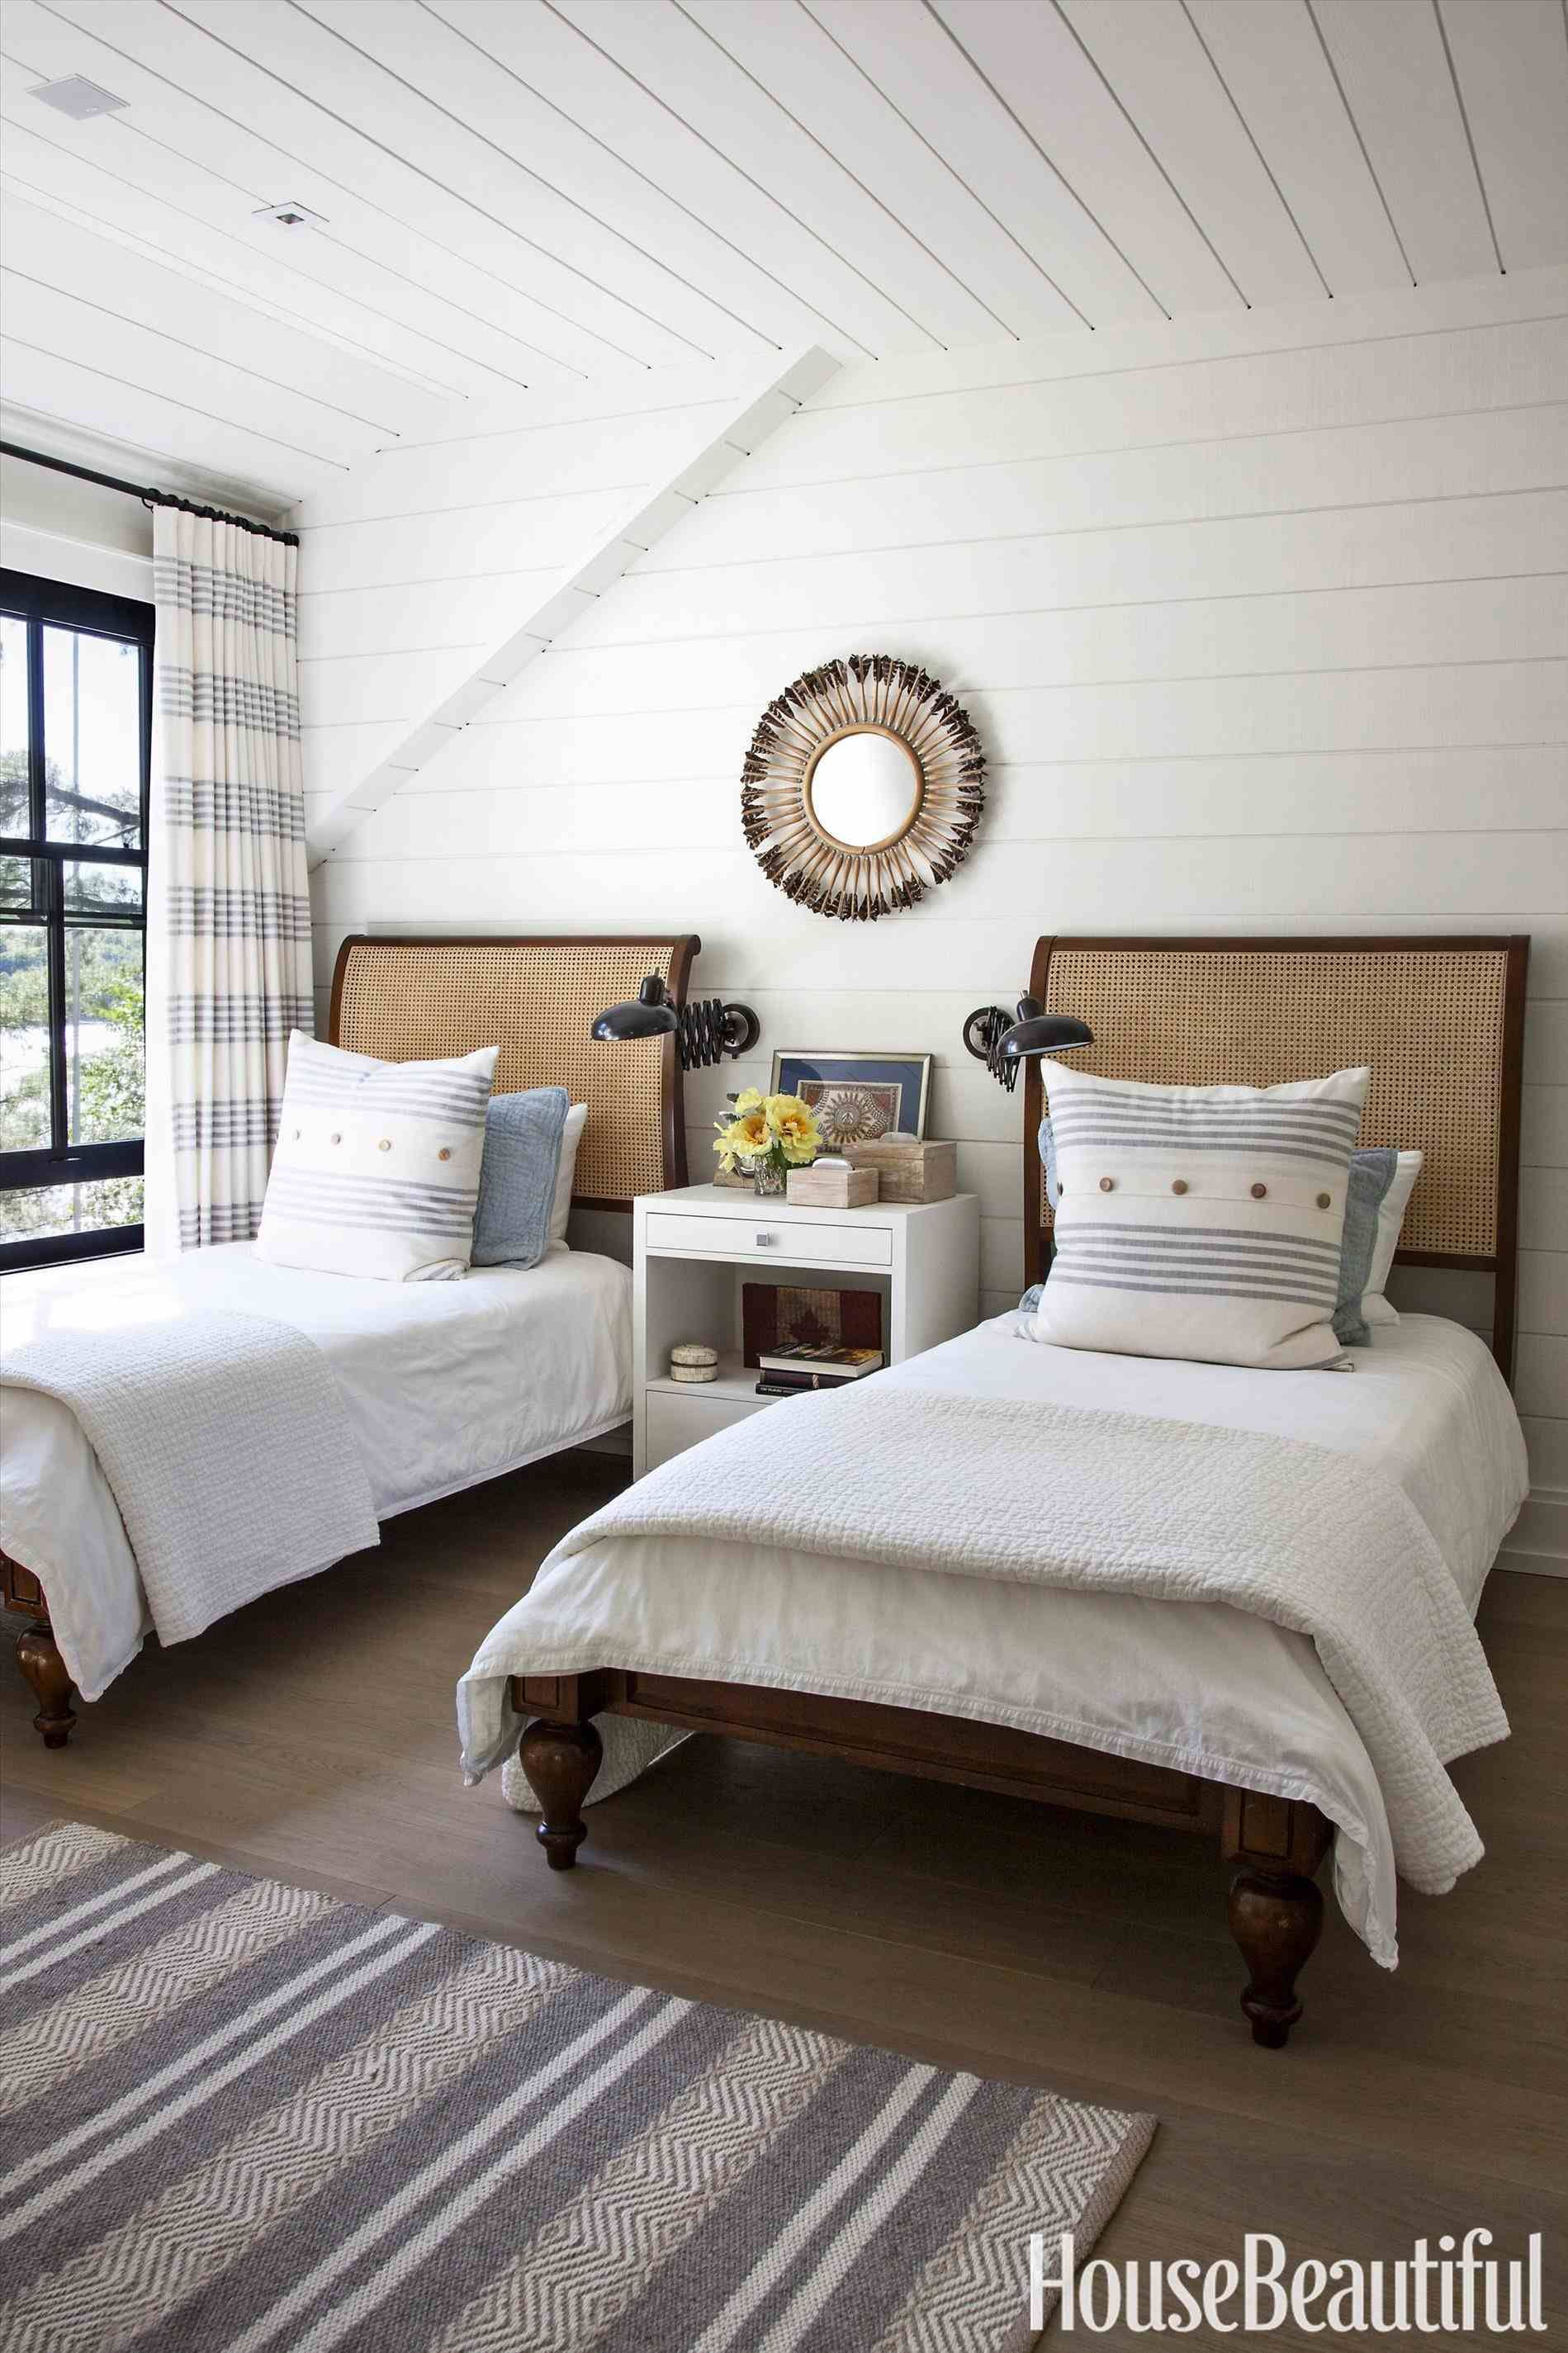 ideas cottage decoration plain style dazzling bedrooms home furniture design bedroom white